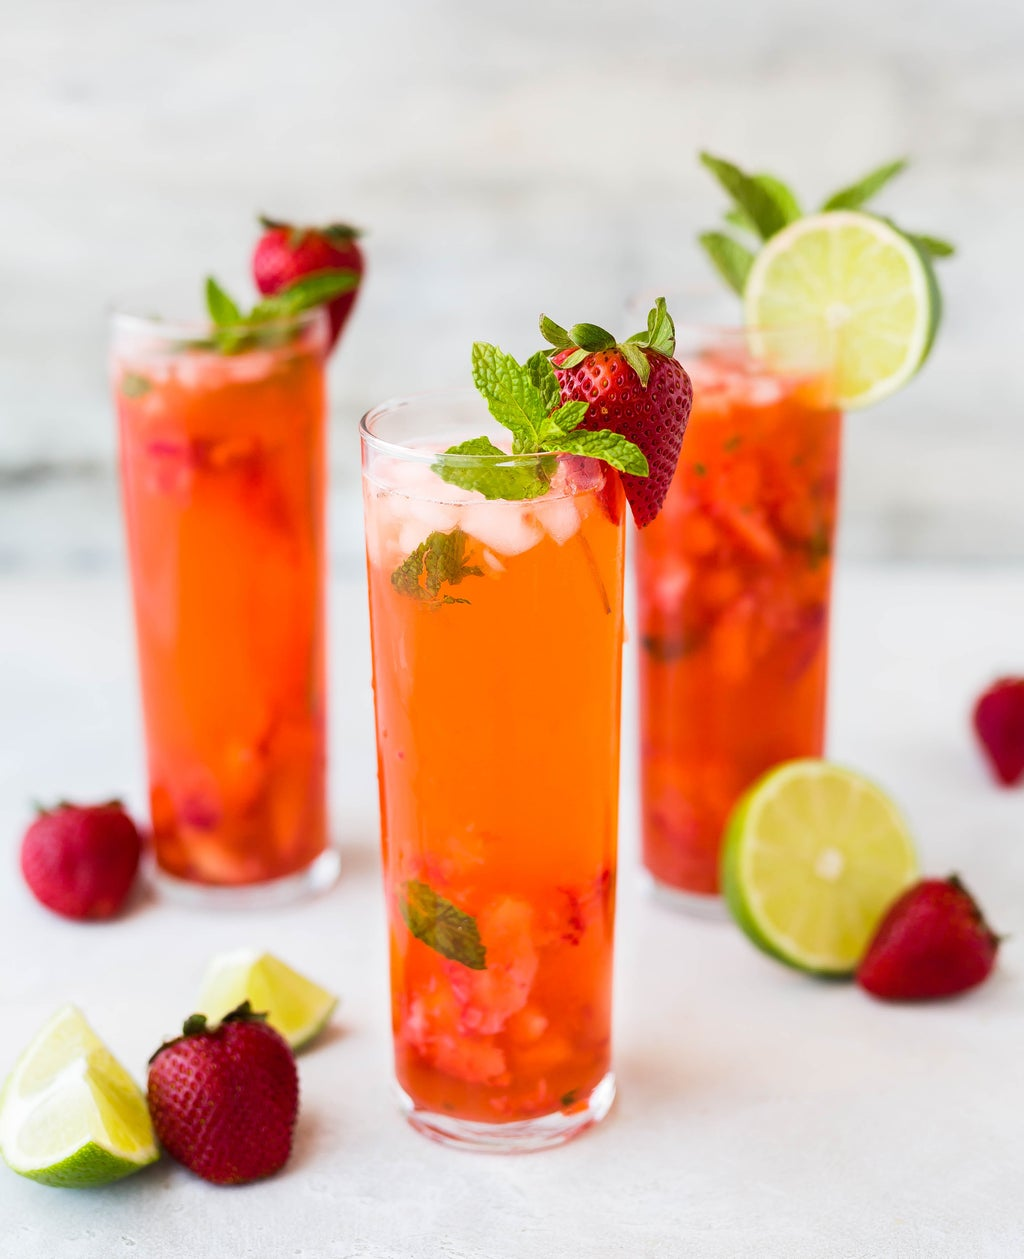 Three glasses of strawberry cocktails